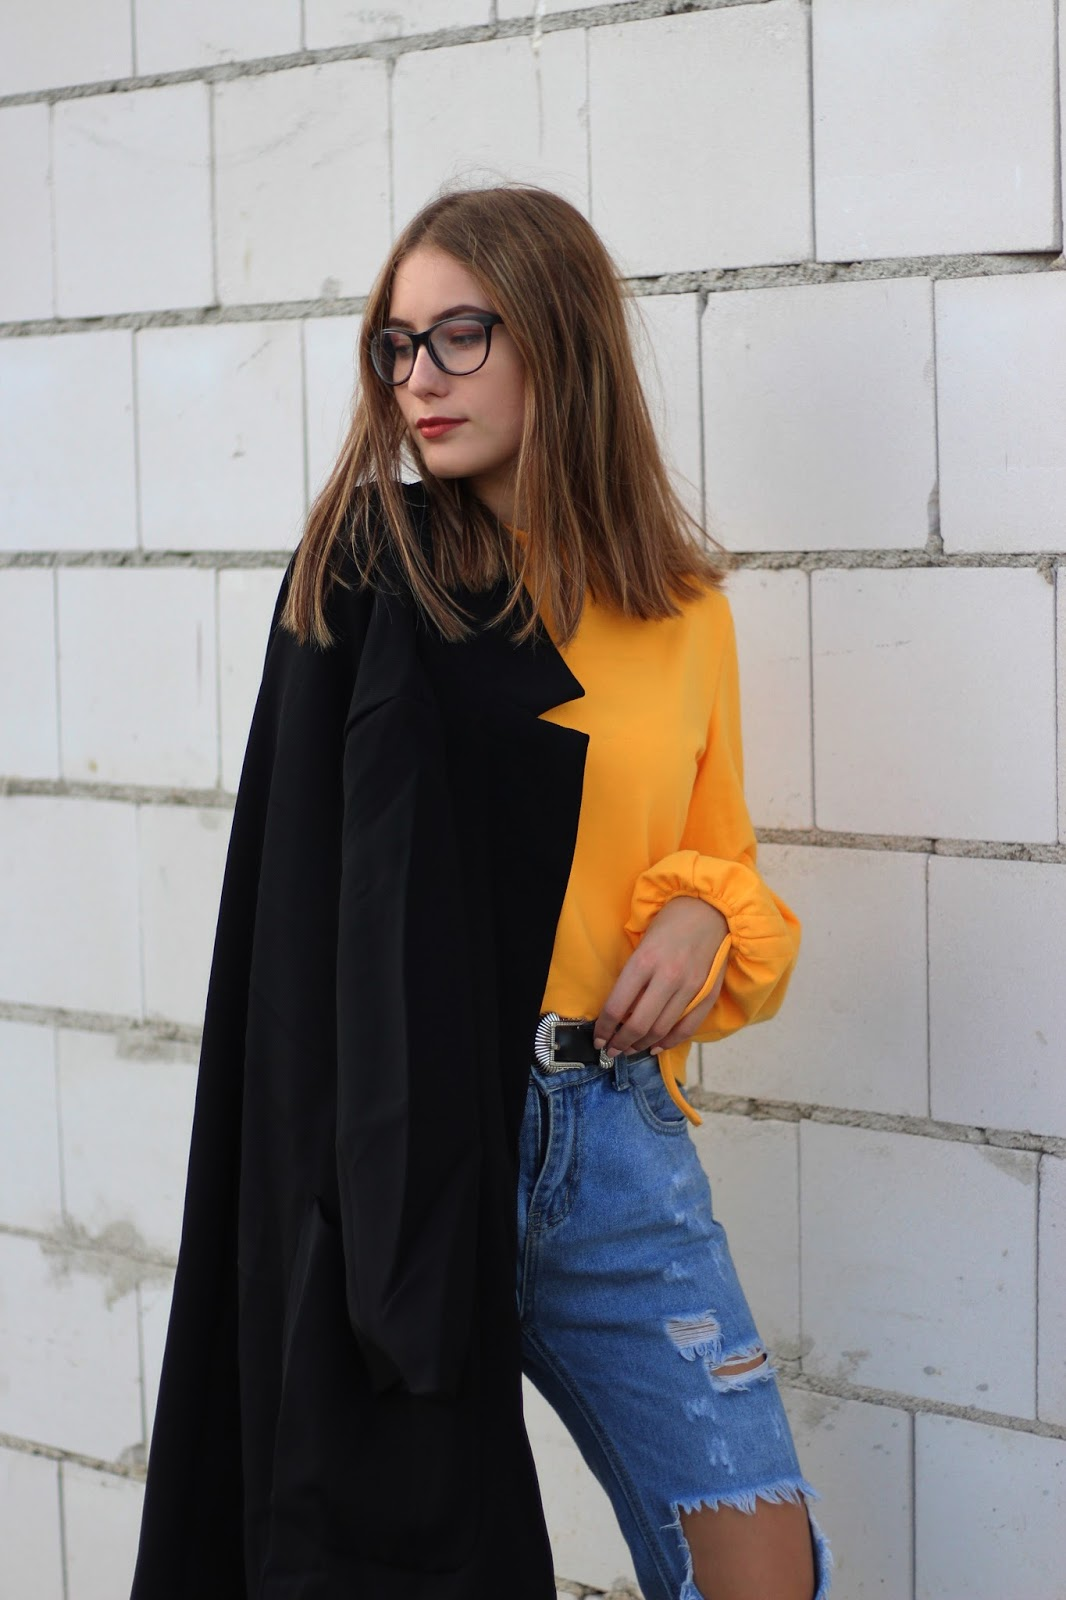 jeans and yellow sweatshirt